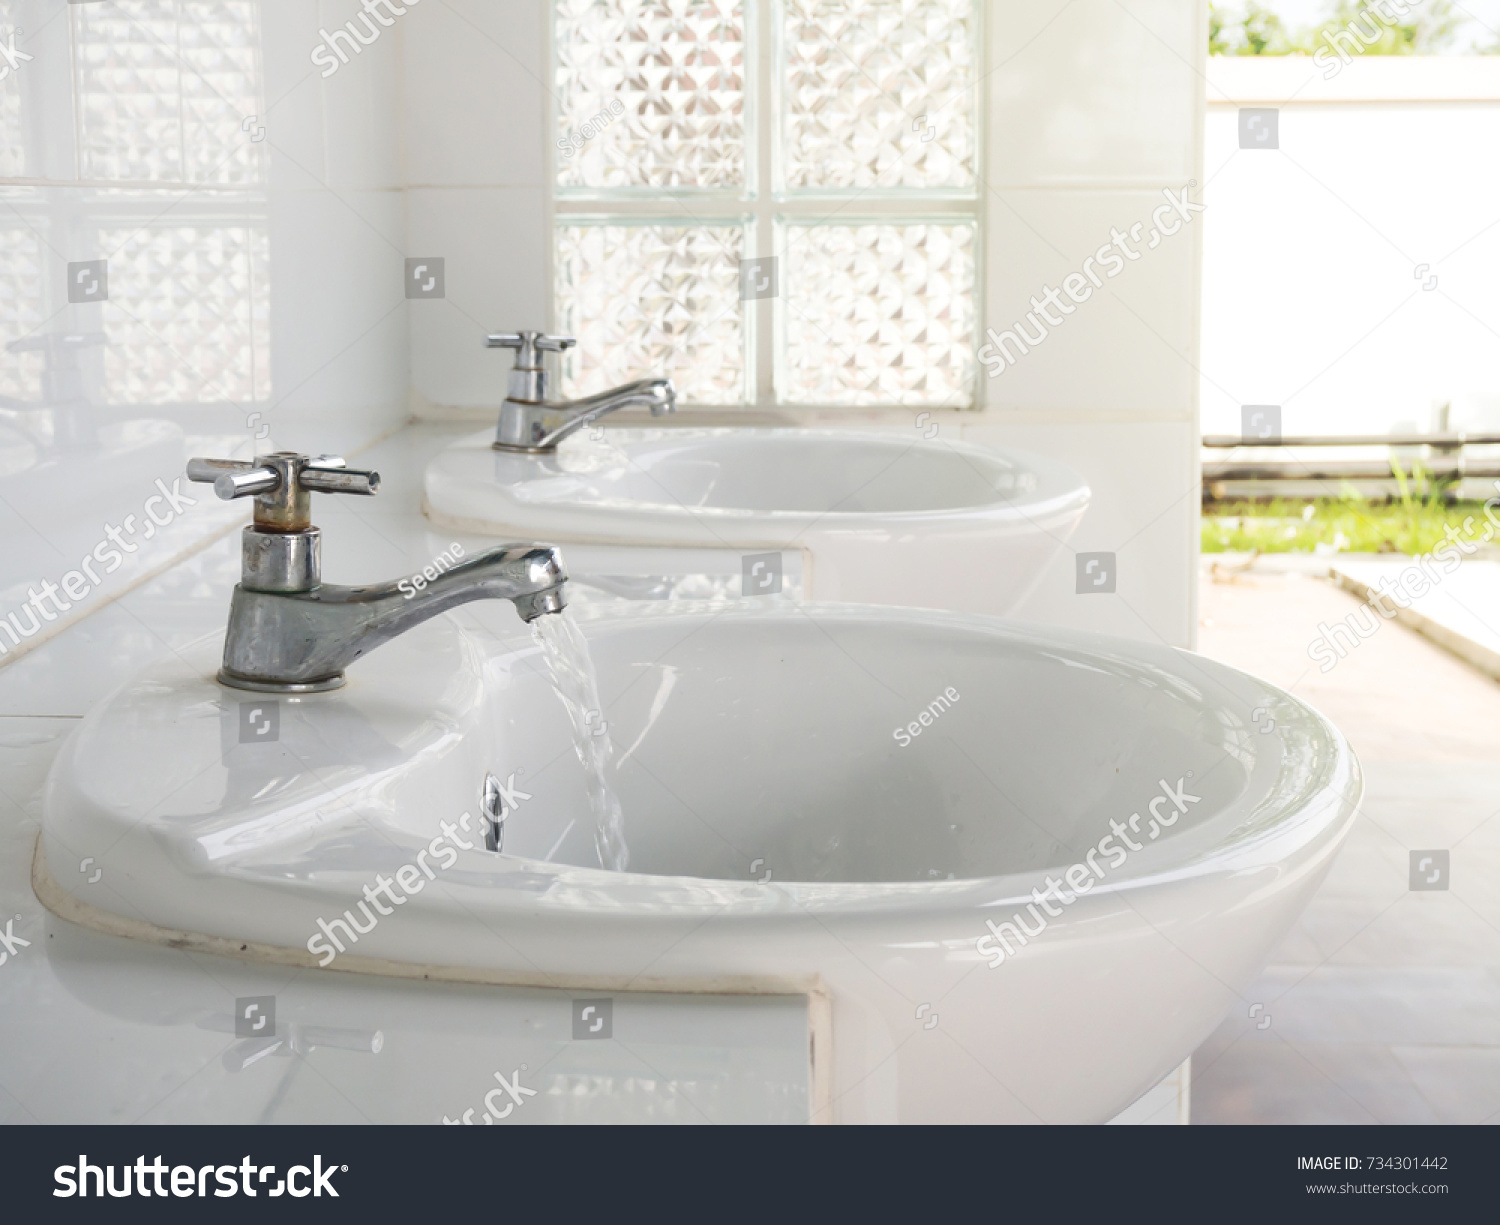 Water Flows Faucet Public Bathroom Concept Stock Photo (Royalty Free ...